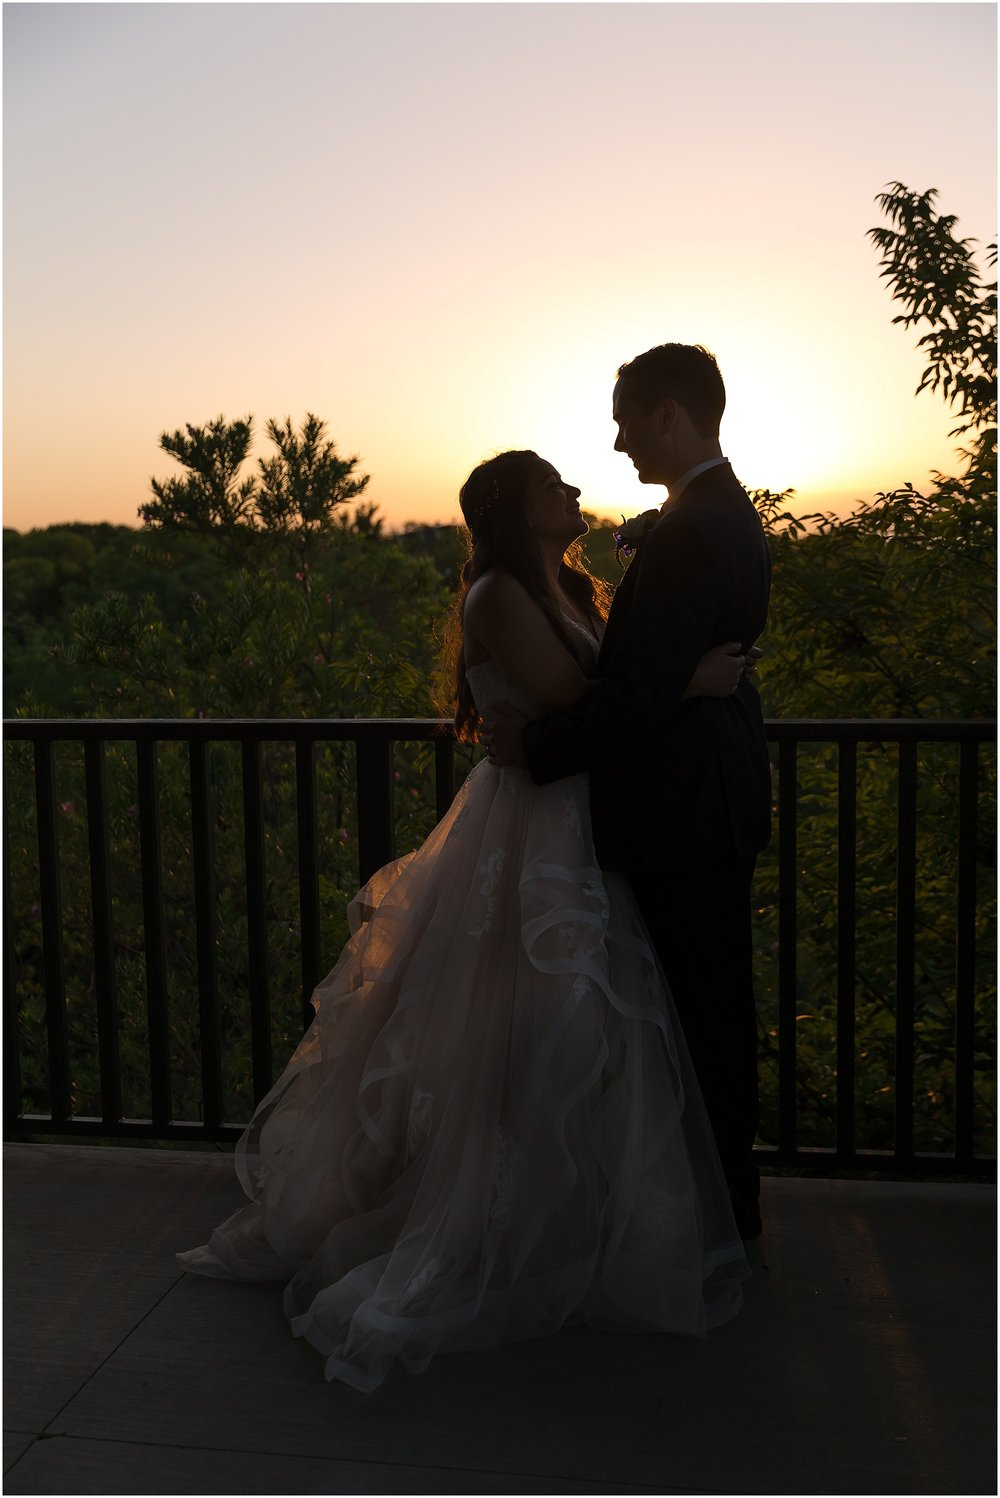 A bride and groom silhouetted by the Texas sunset at their summer wedding in Waco, Texas - Jason & Melaina Photography - www.jasonandmelaina.com